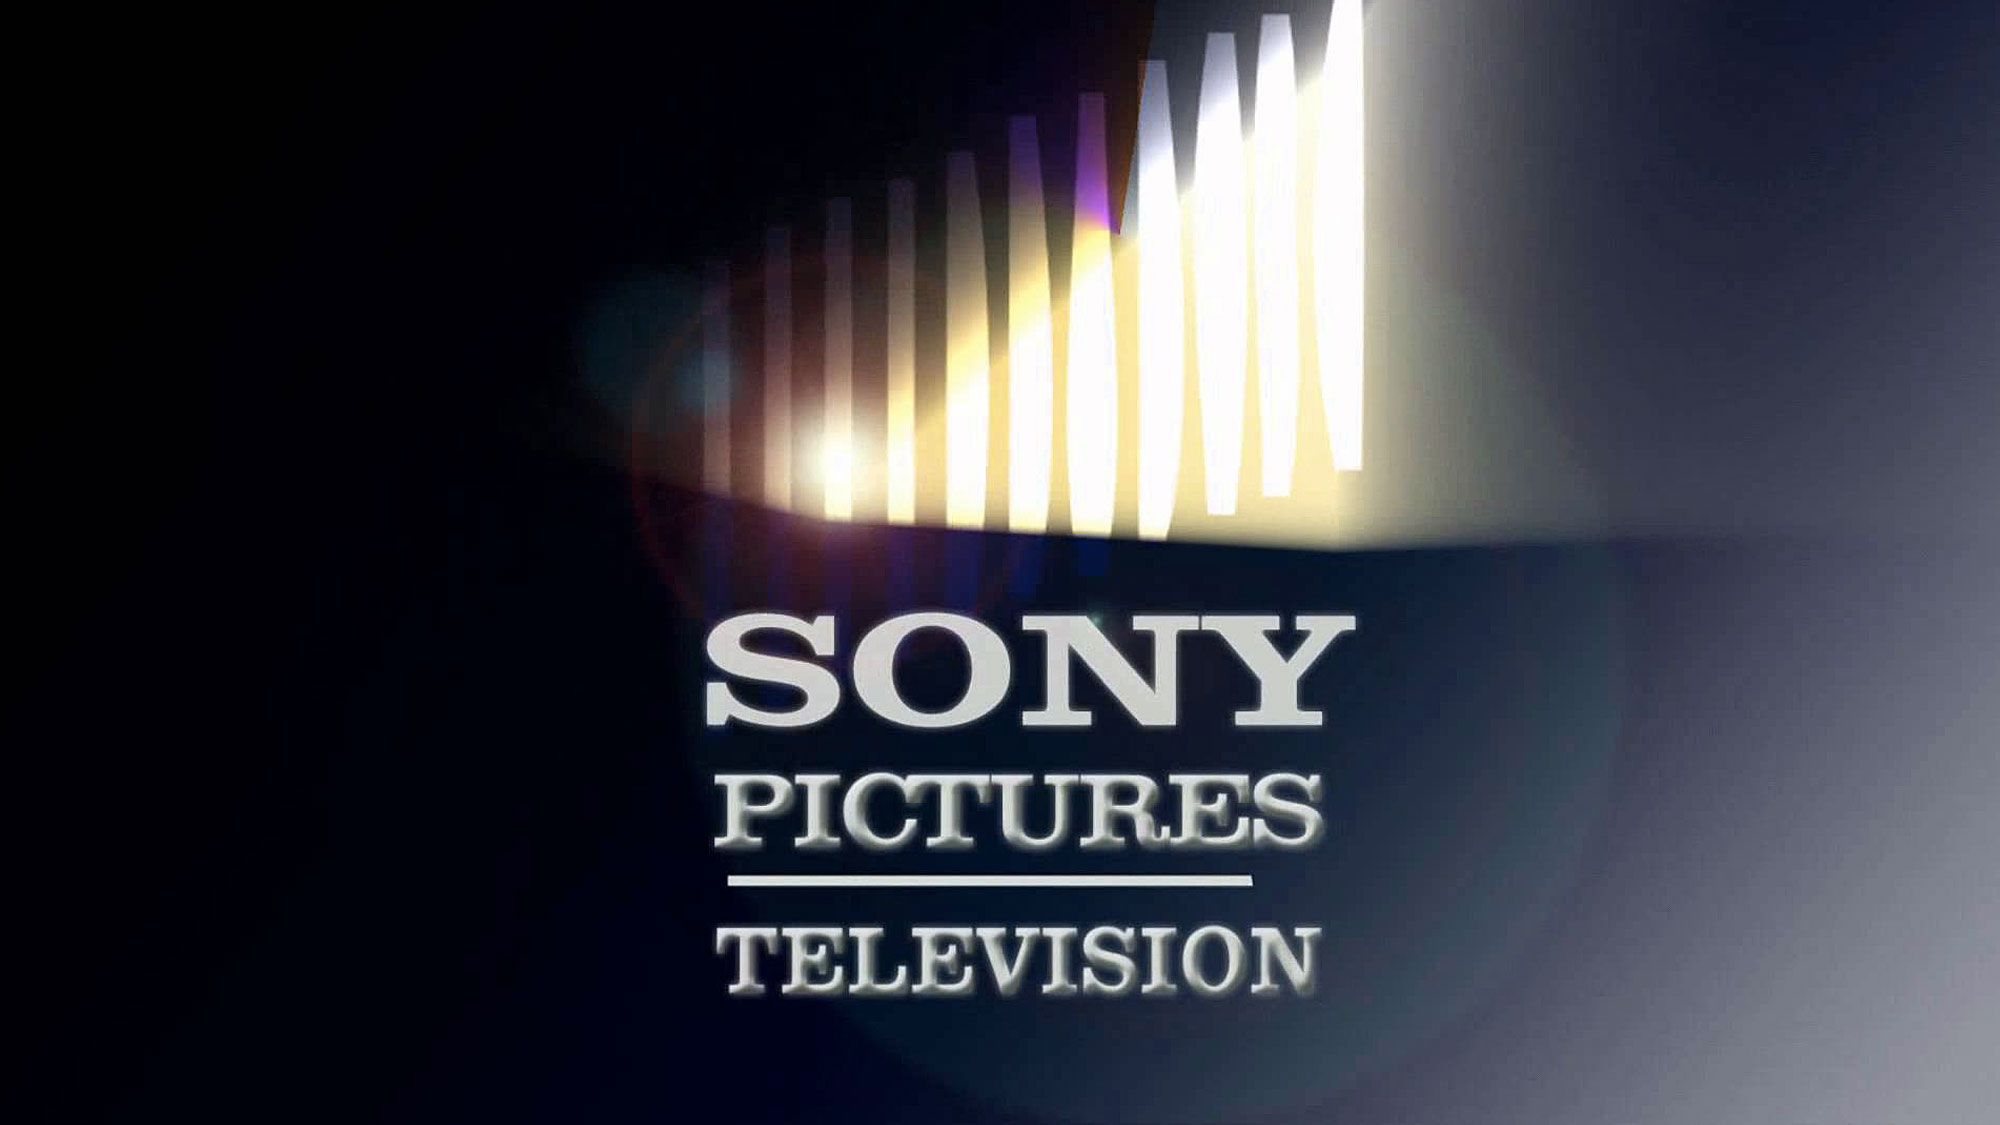 Sony Pictures Television.